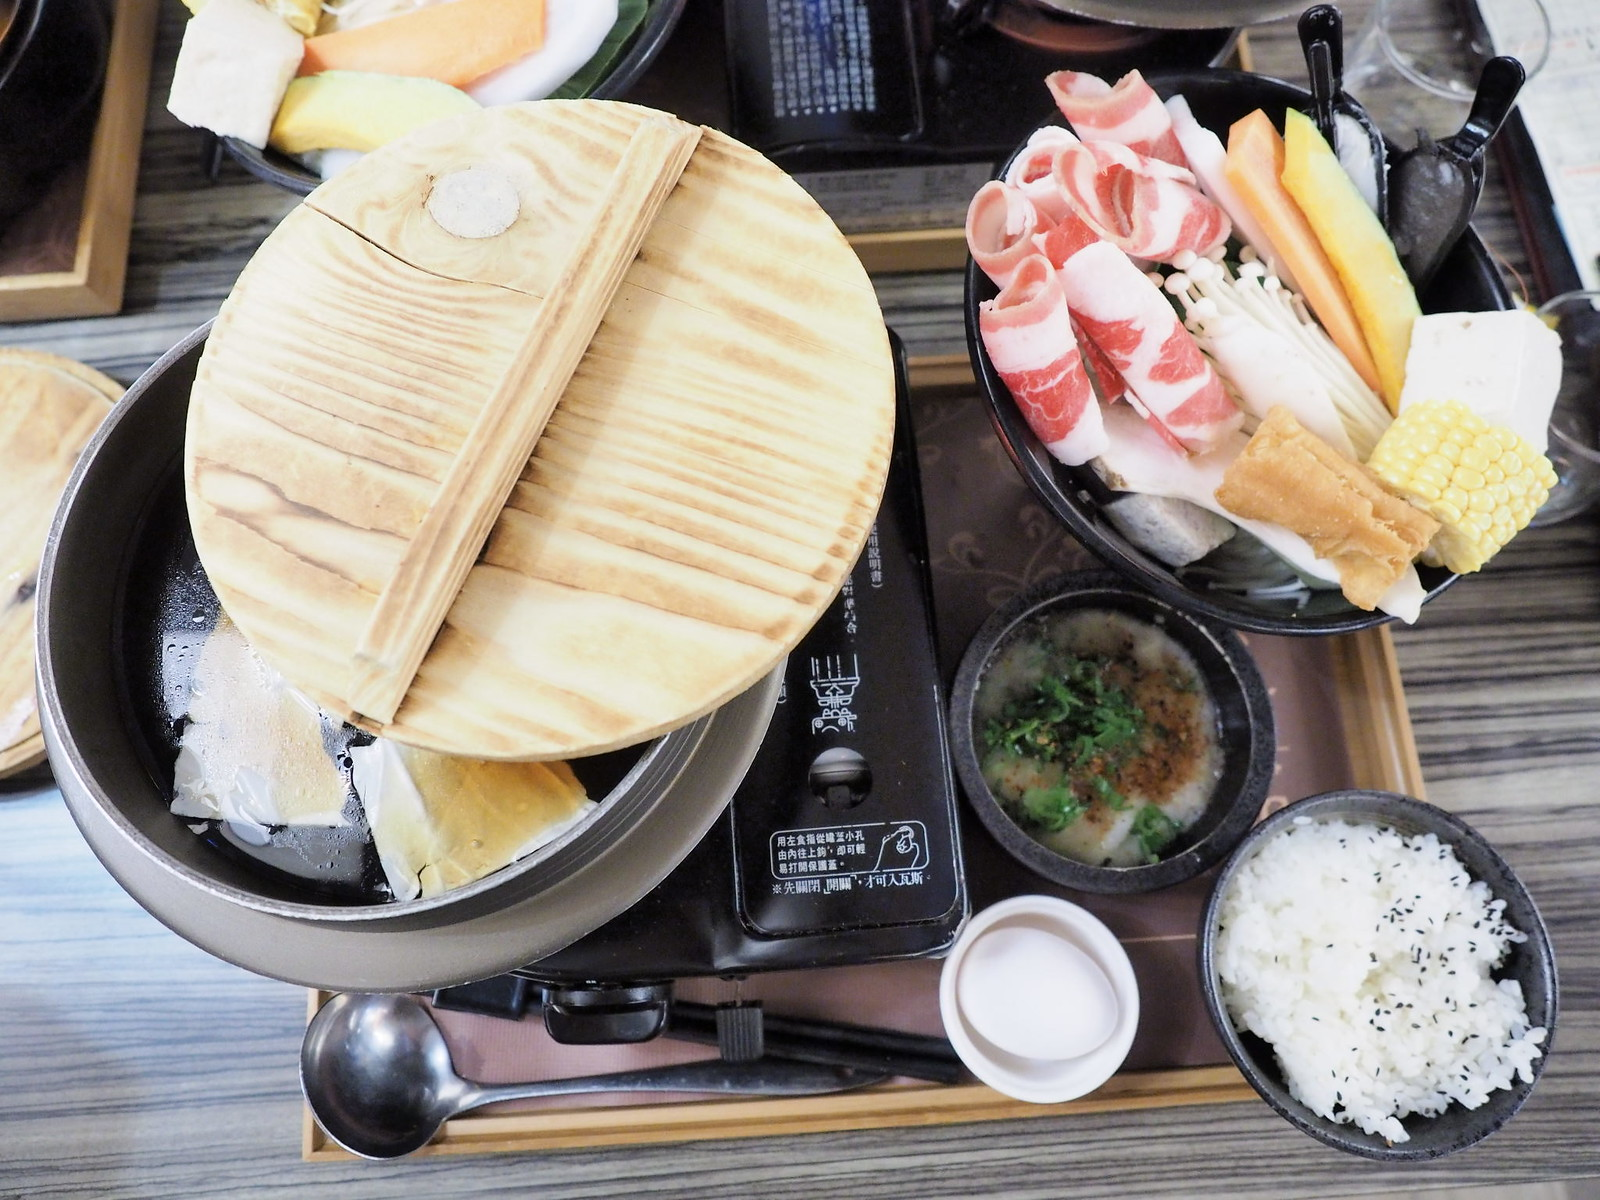 My pot of steamboat set at EZ.KON Restaurant at Taichung, Taiwan